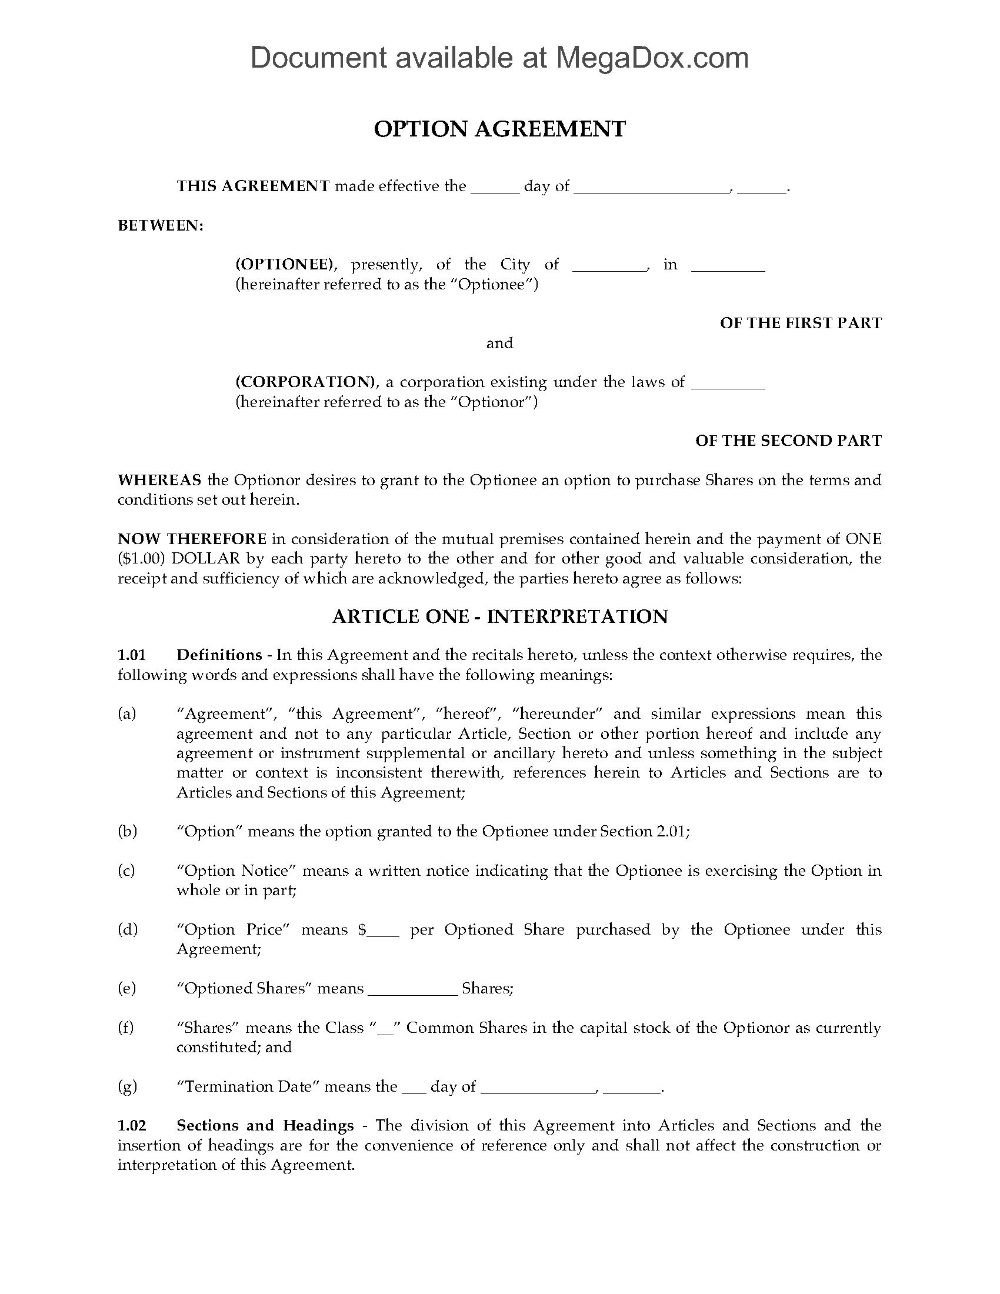 Canada Stock Option Agreement Nonplan Legal Forms And